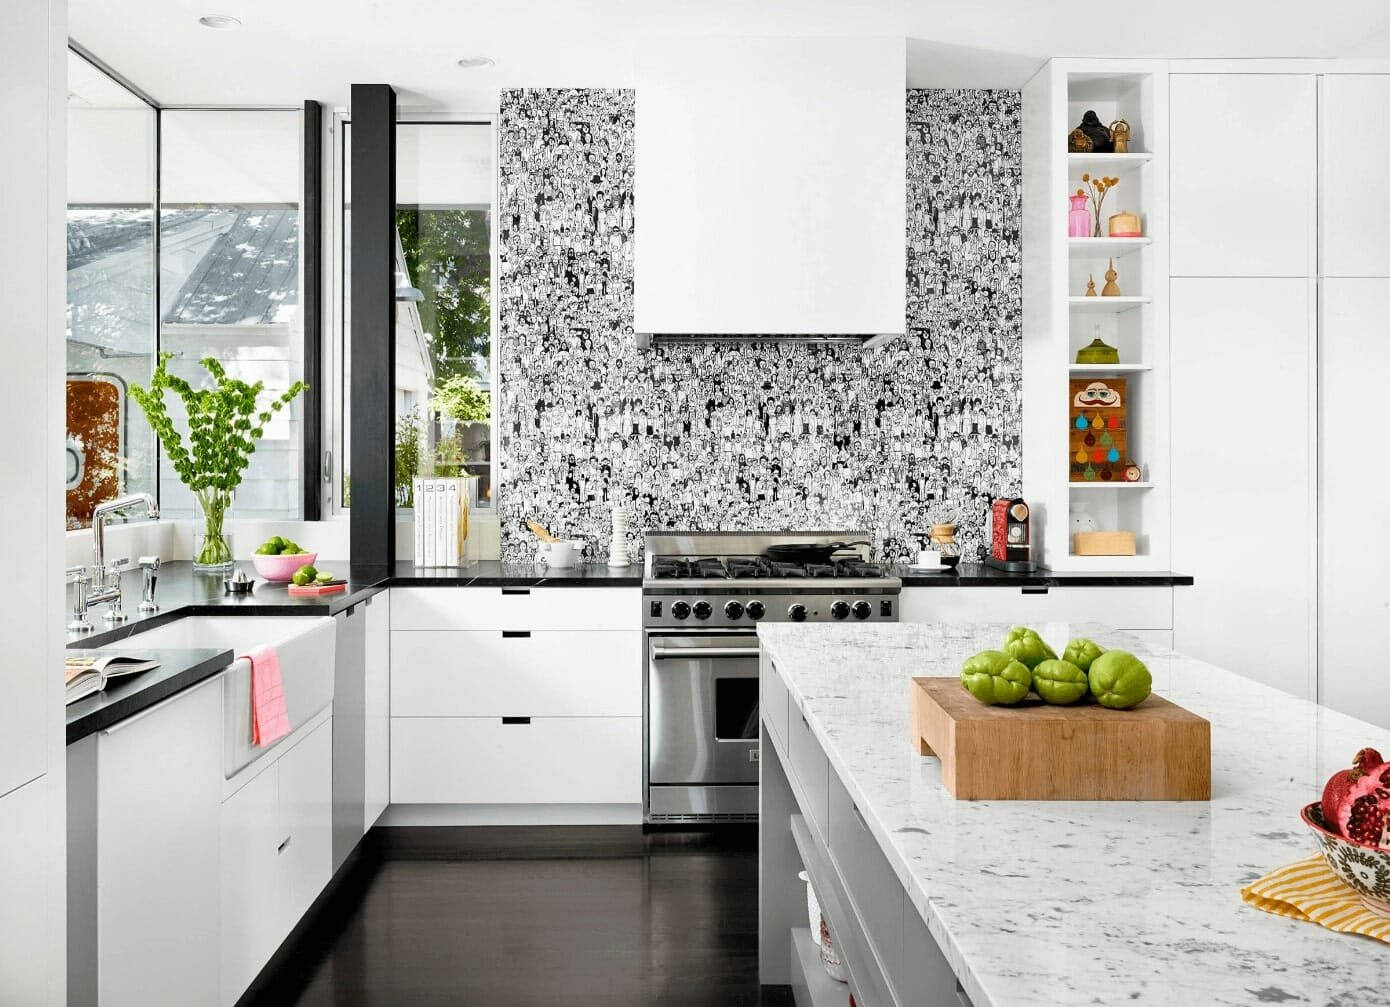 Backsplash wallpaper ideas for the kitchen